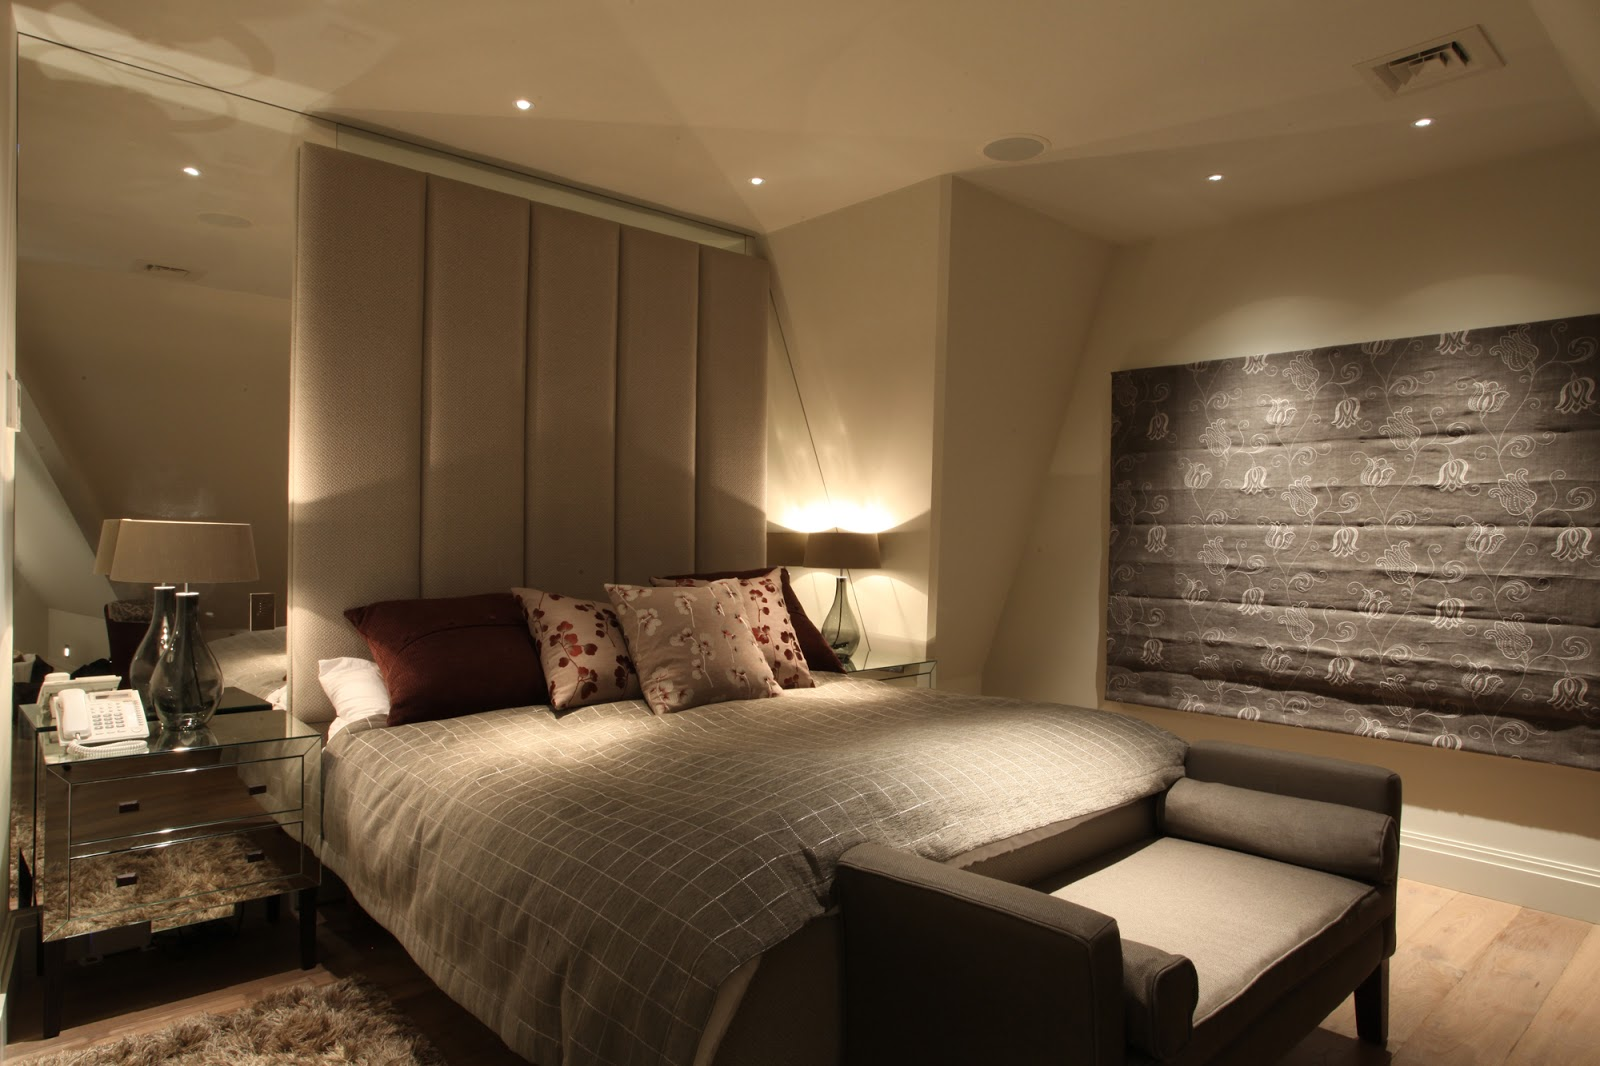 Modern bed side view - King Size Bed With Side Tables If Needed Then Side Table Lamps Etc